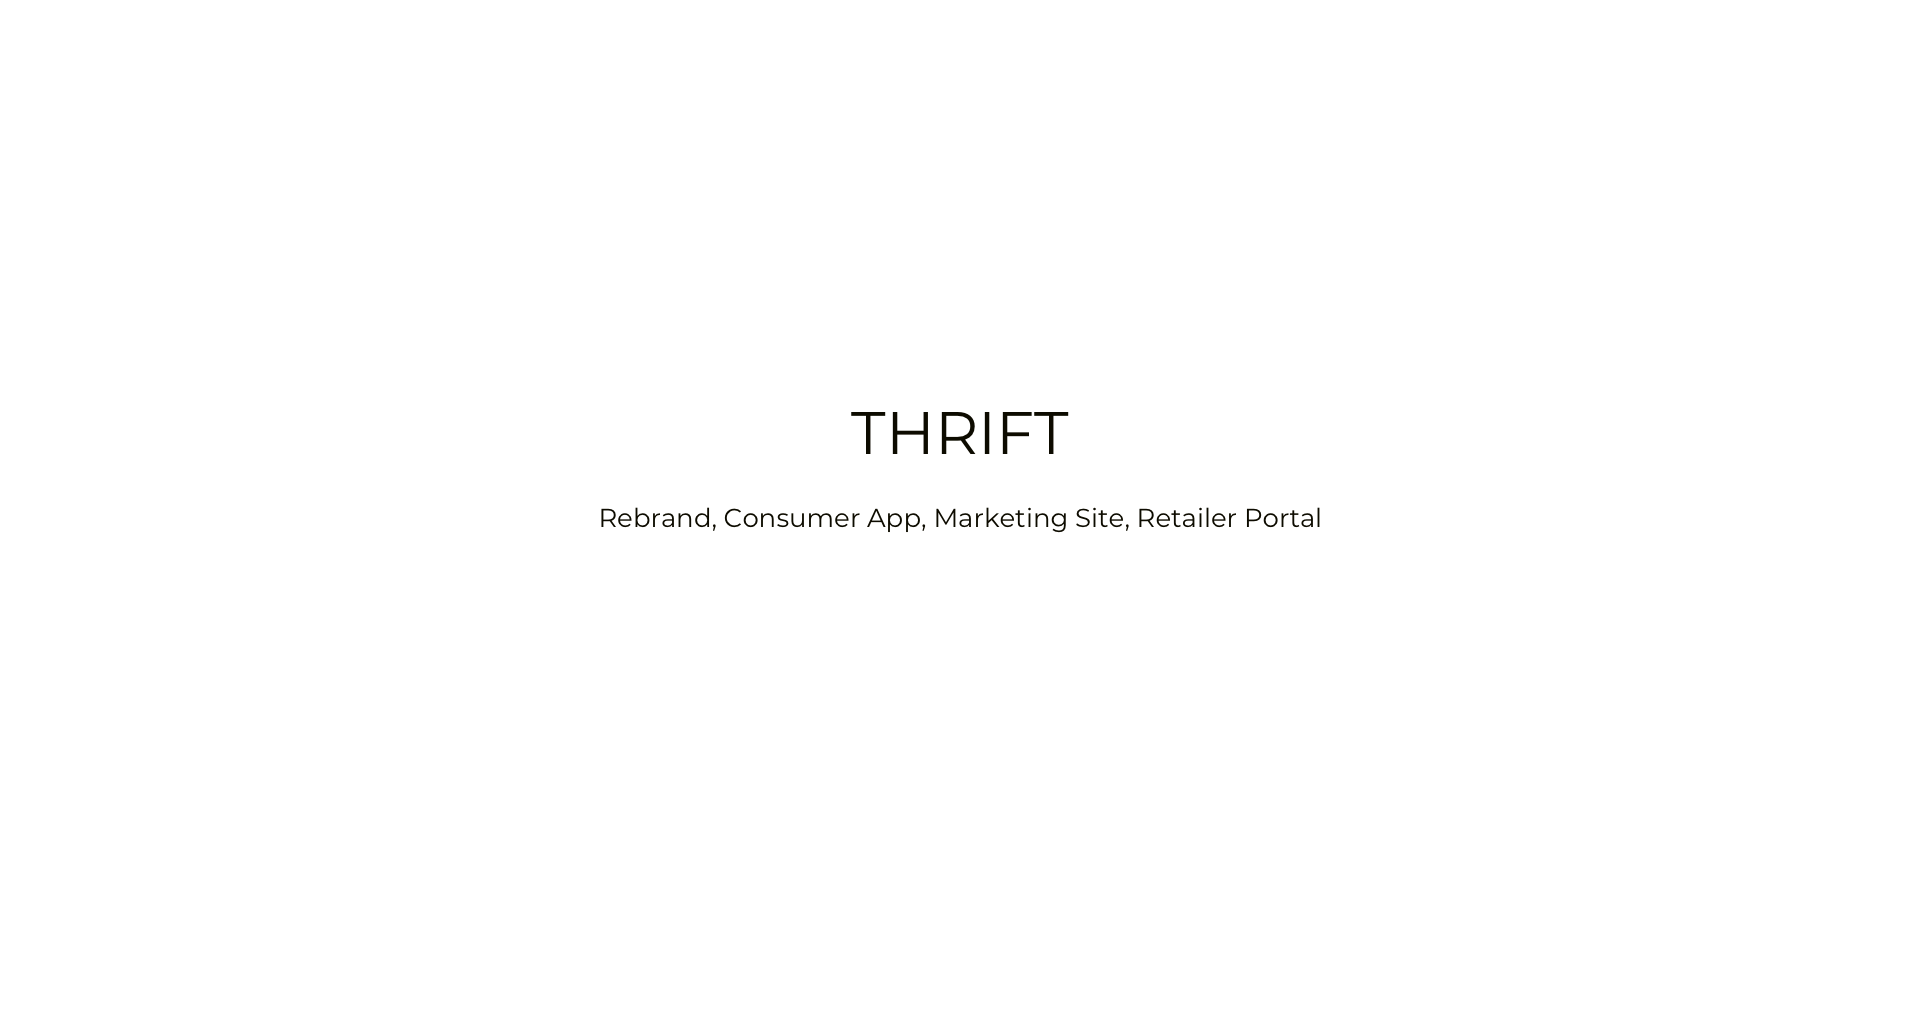 thrift_0.png